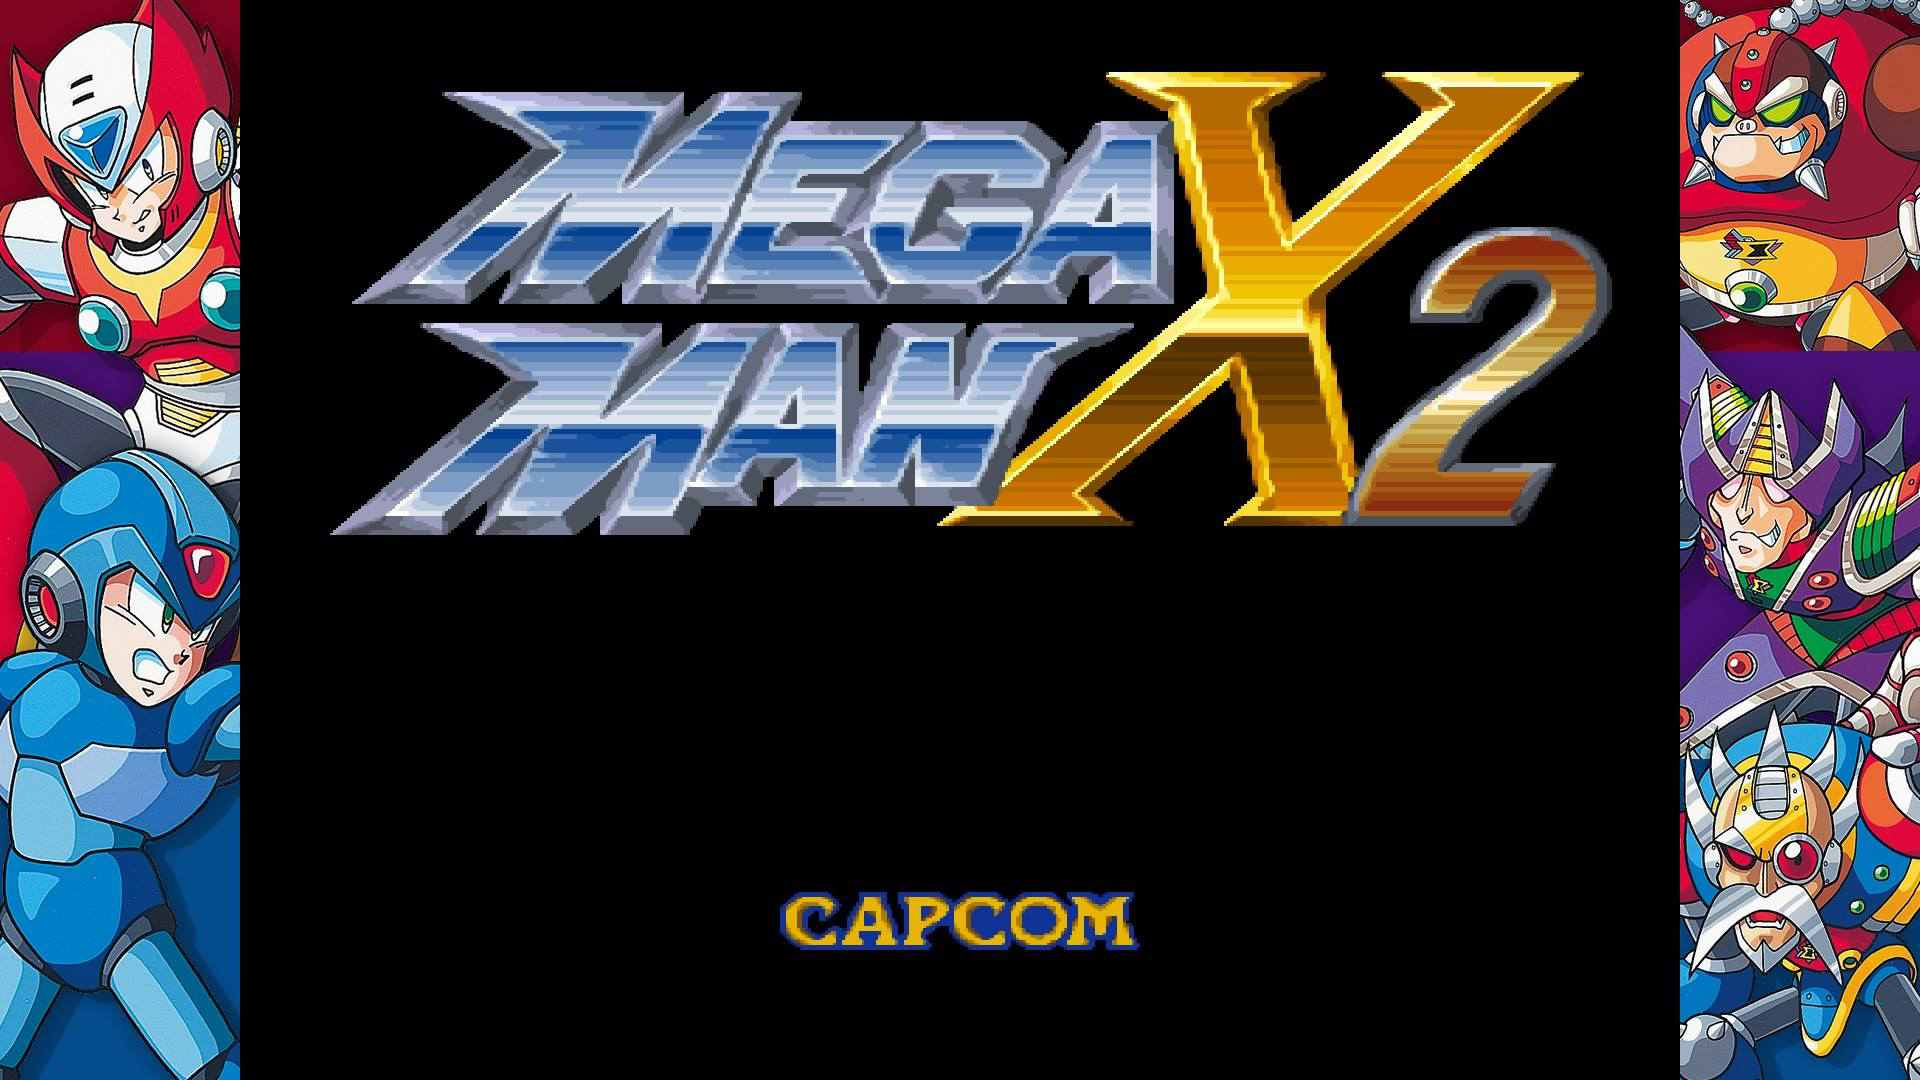 Mega Man X2 was released for the Super Nintendo Entertainment System in 1994.